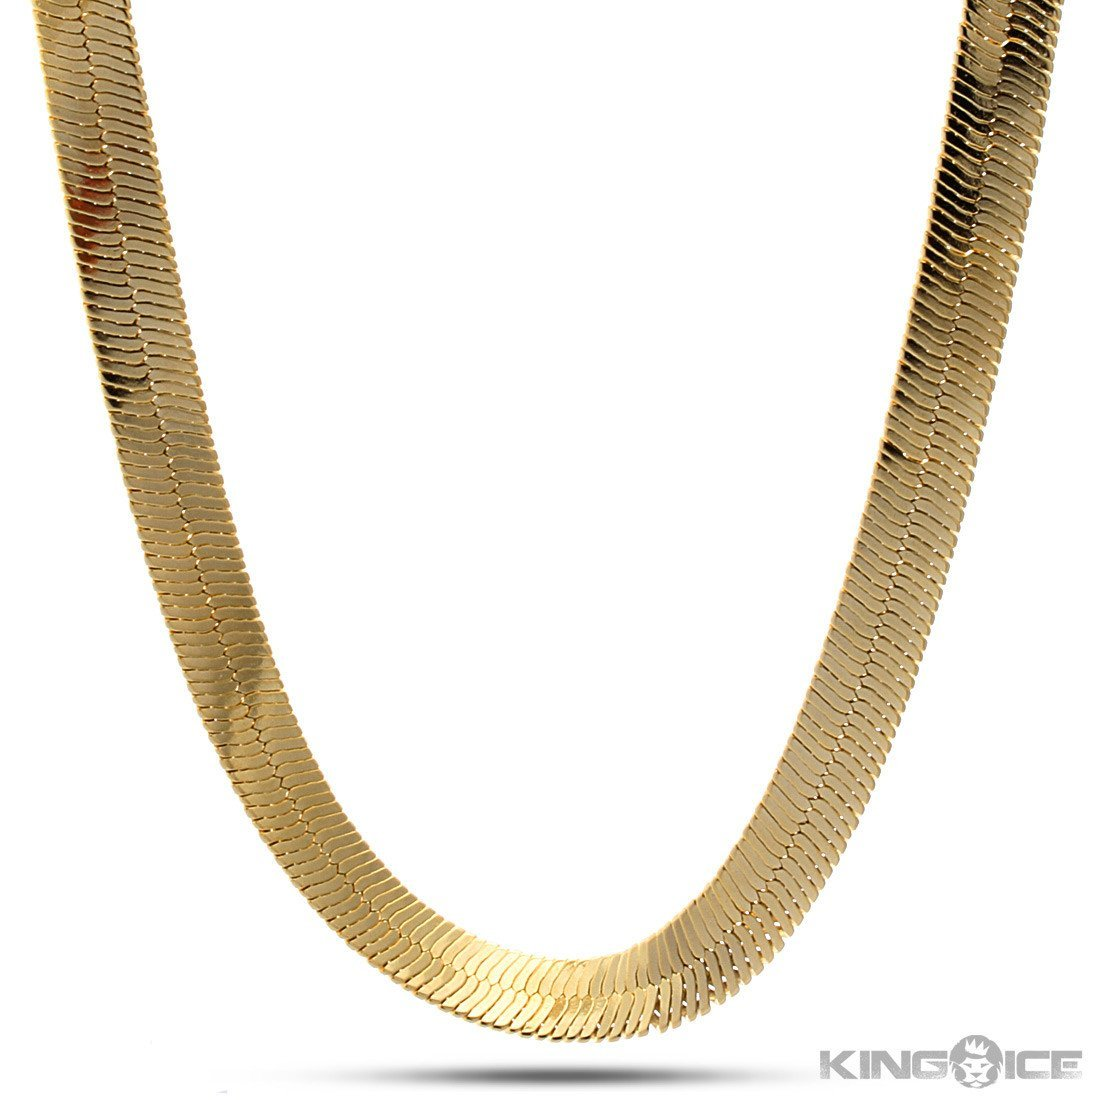 Sale - 10mm King Ice 14K Gold Herringbone Chain -   jetcube